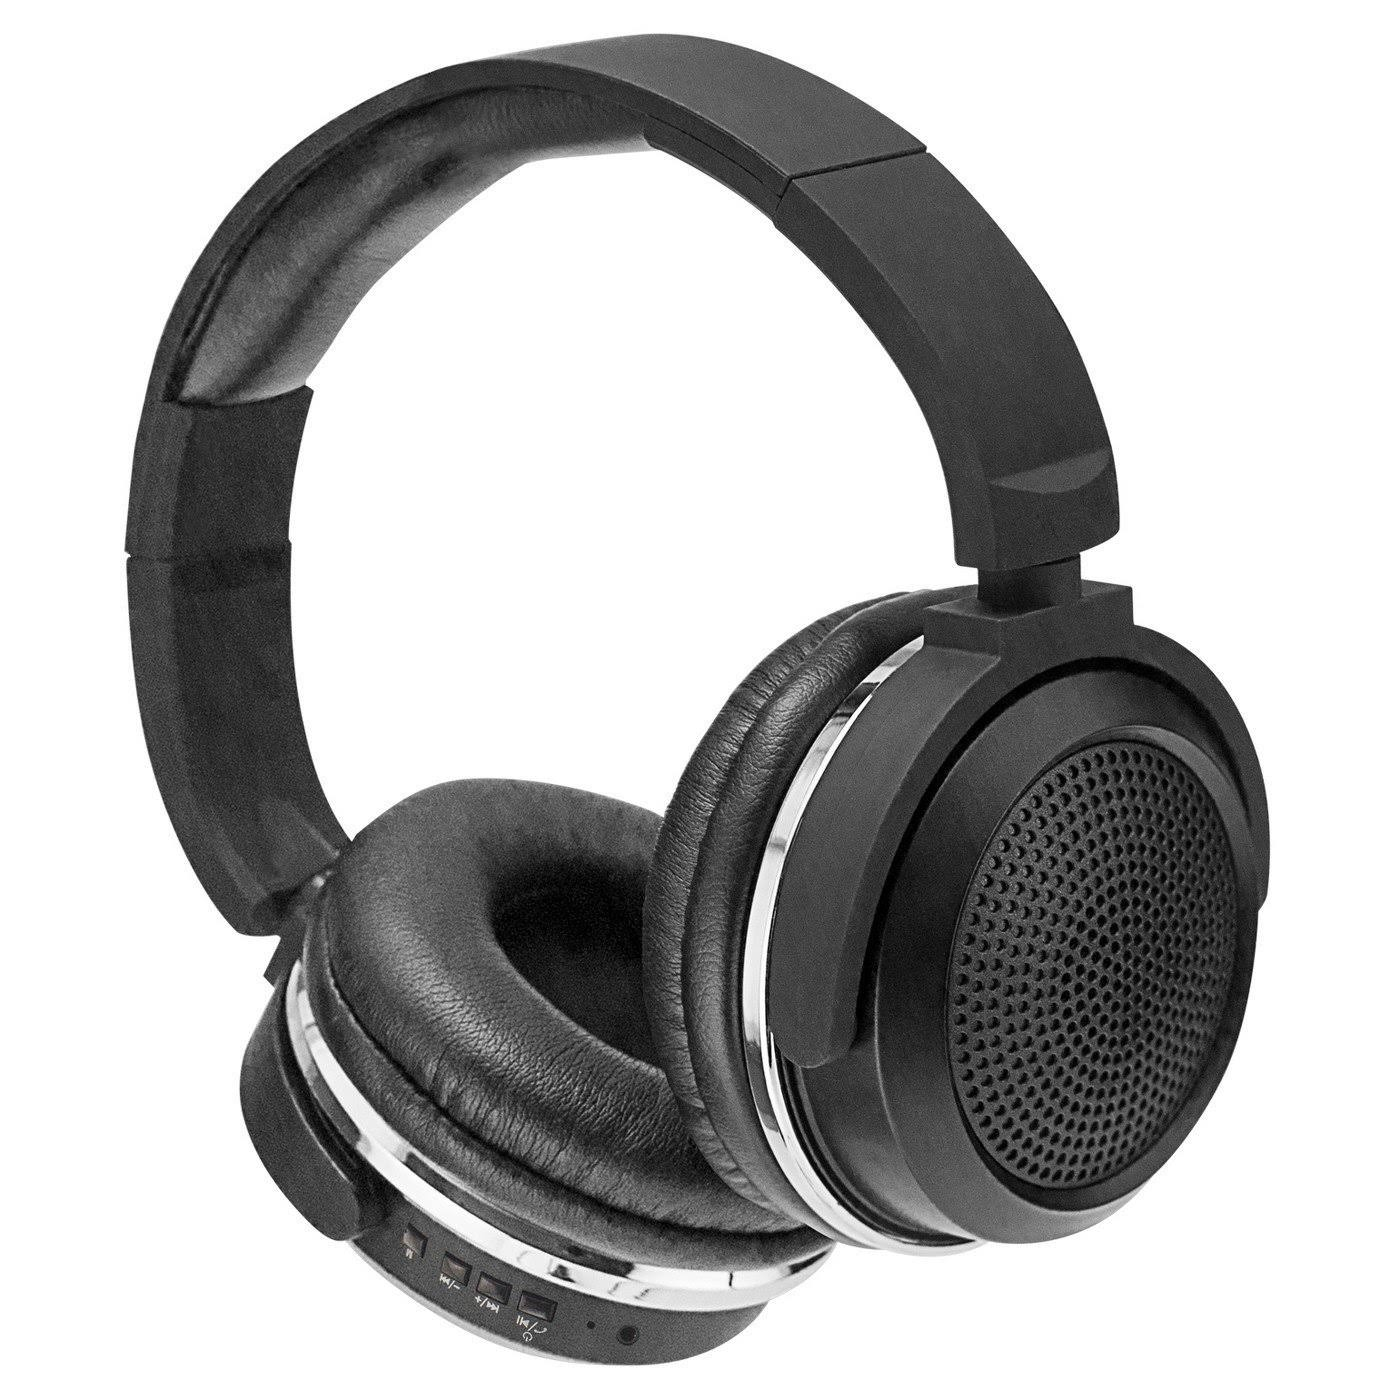 Sentry BT600 Pro Series Bluetooth Headphones - Black